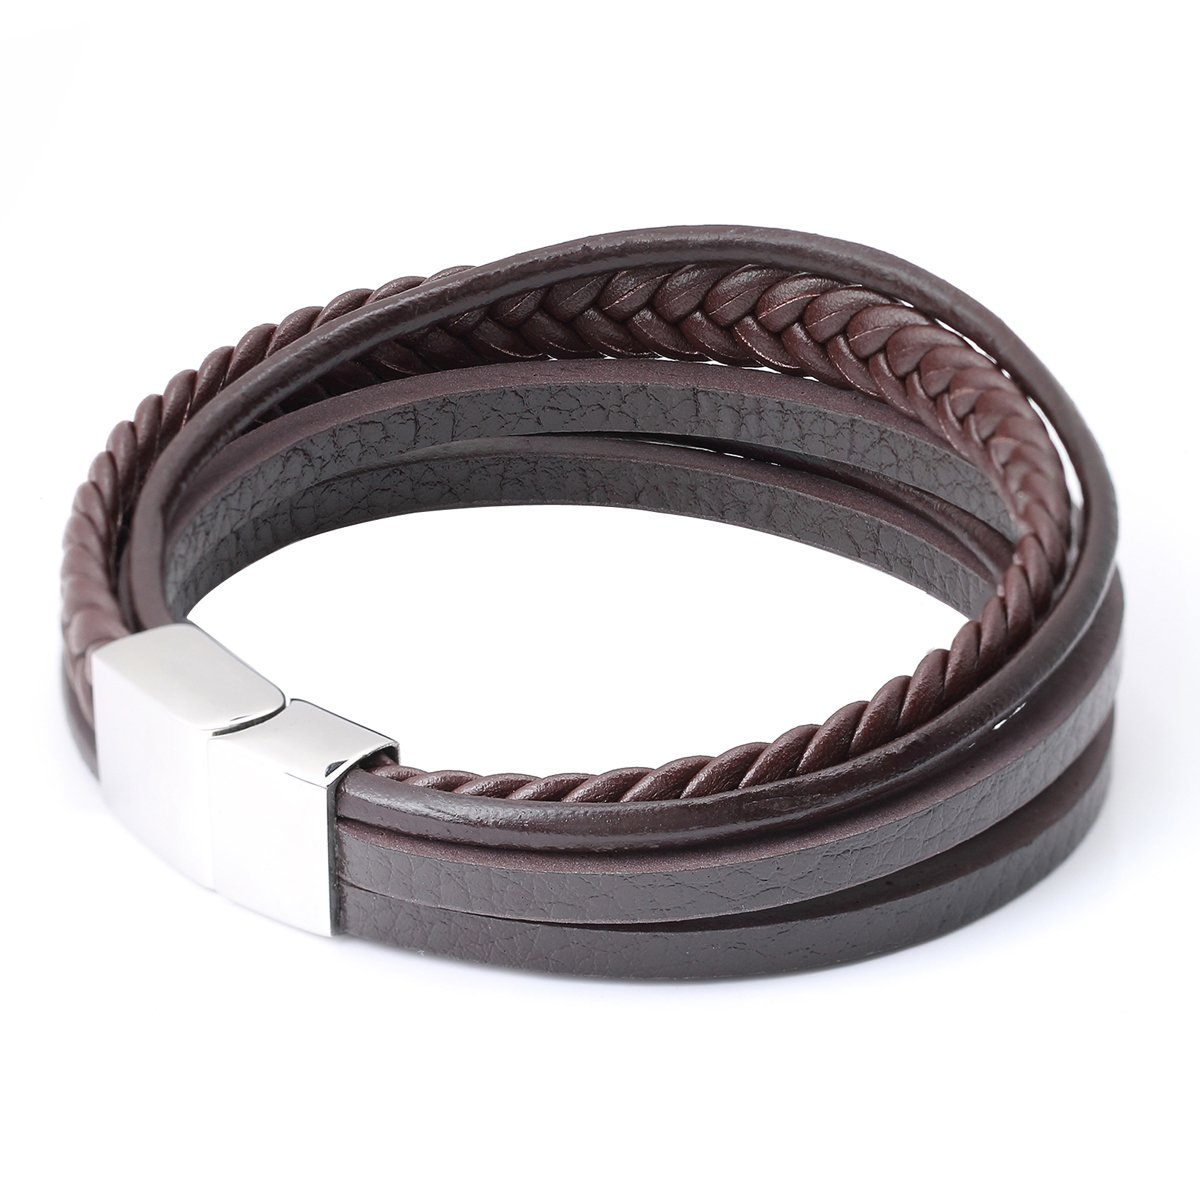 Eigso Braided Leather Bracelet for Men Wristband with Stainless Steel Magnetic Clasp